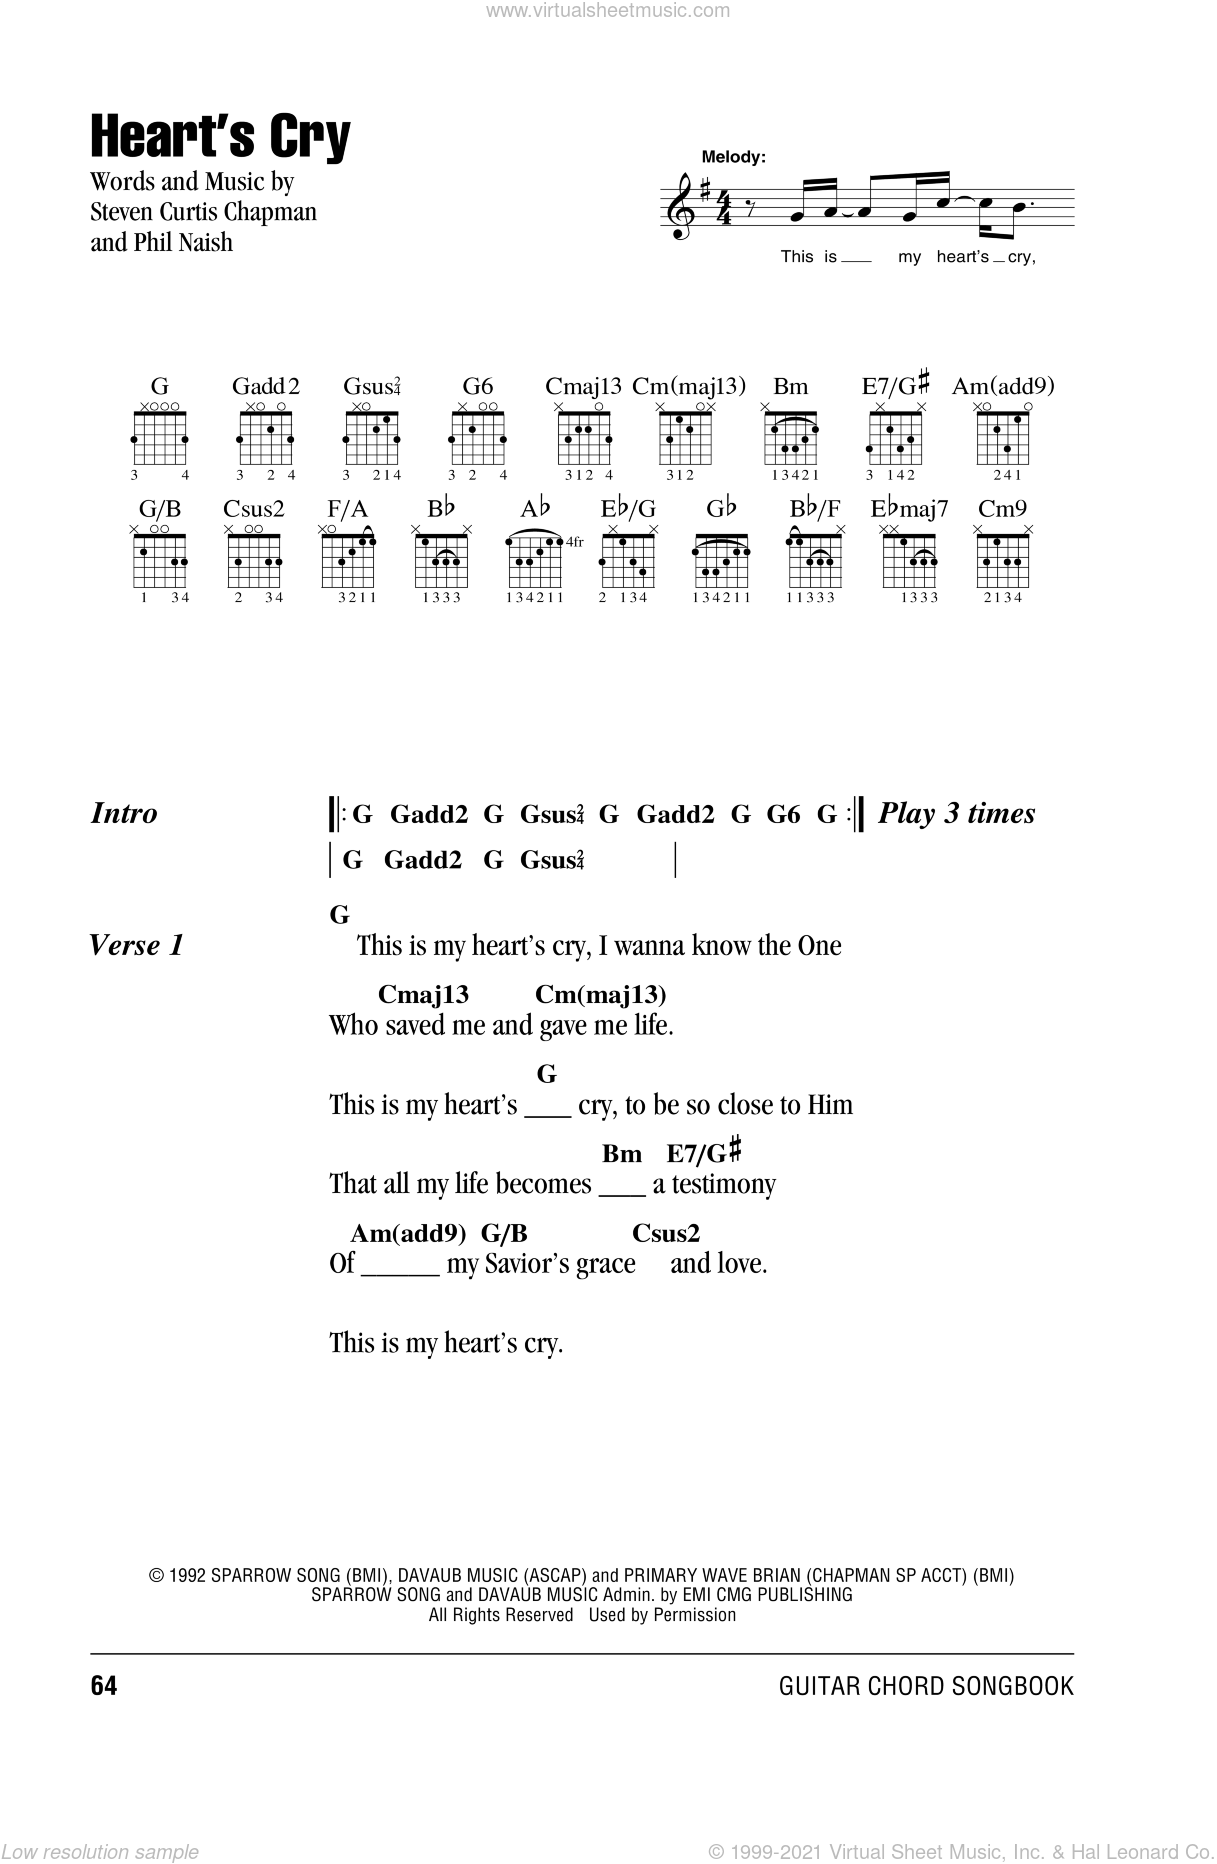 Heart's Cry sheet music for guitar (chords) by Steven Curtis Chapman and Phil Naish, intermediate skill level